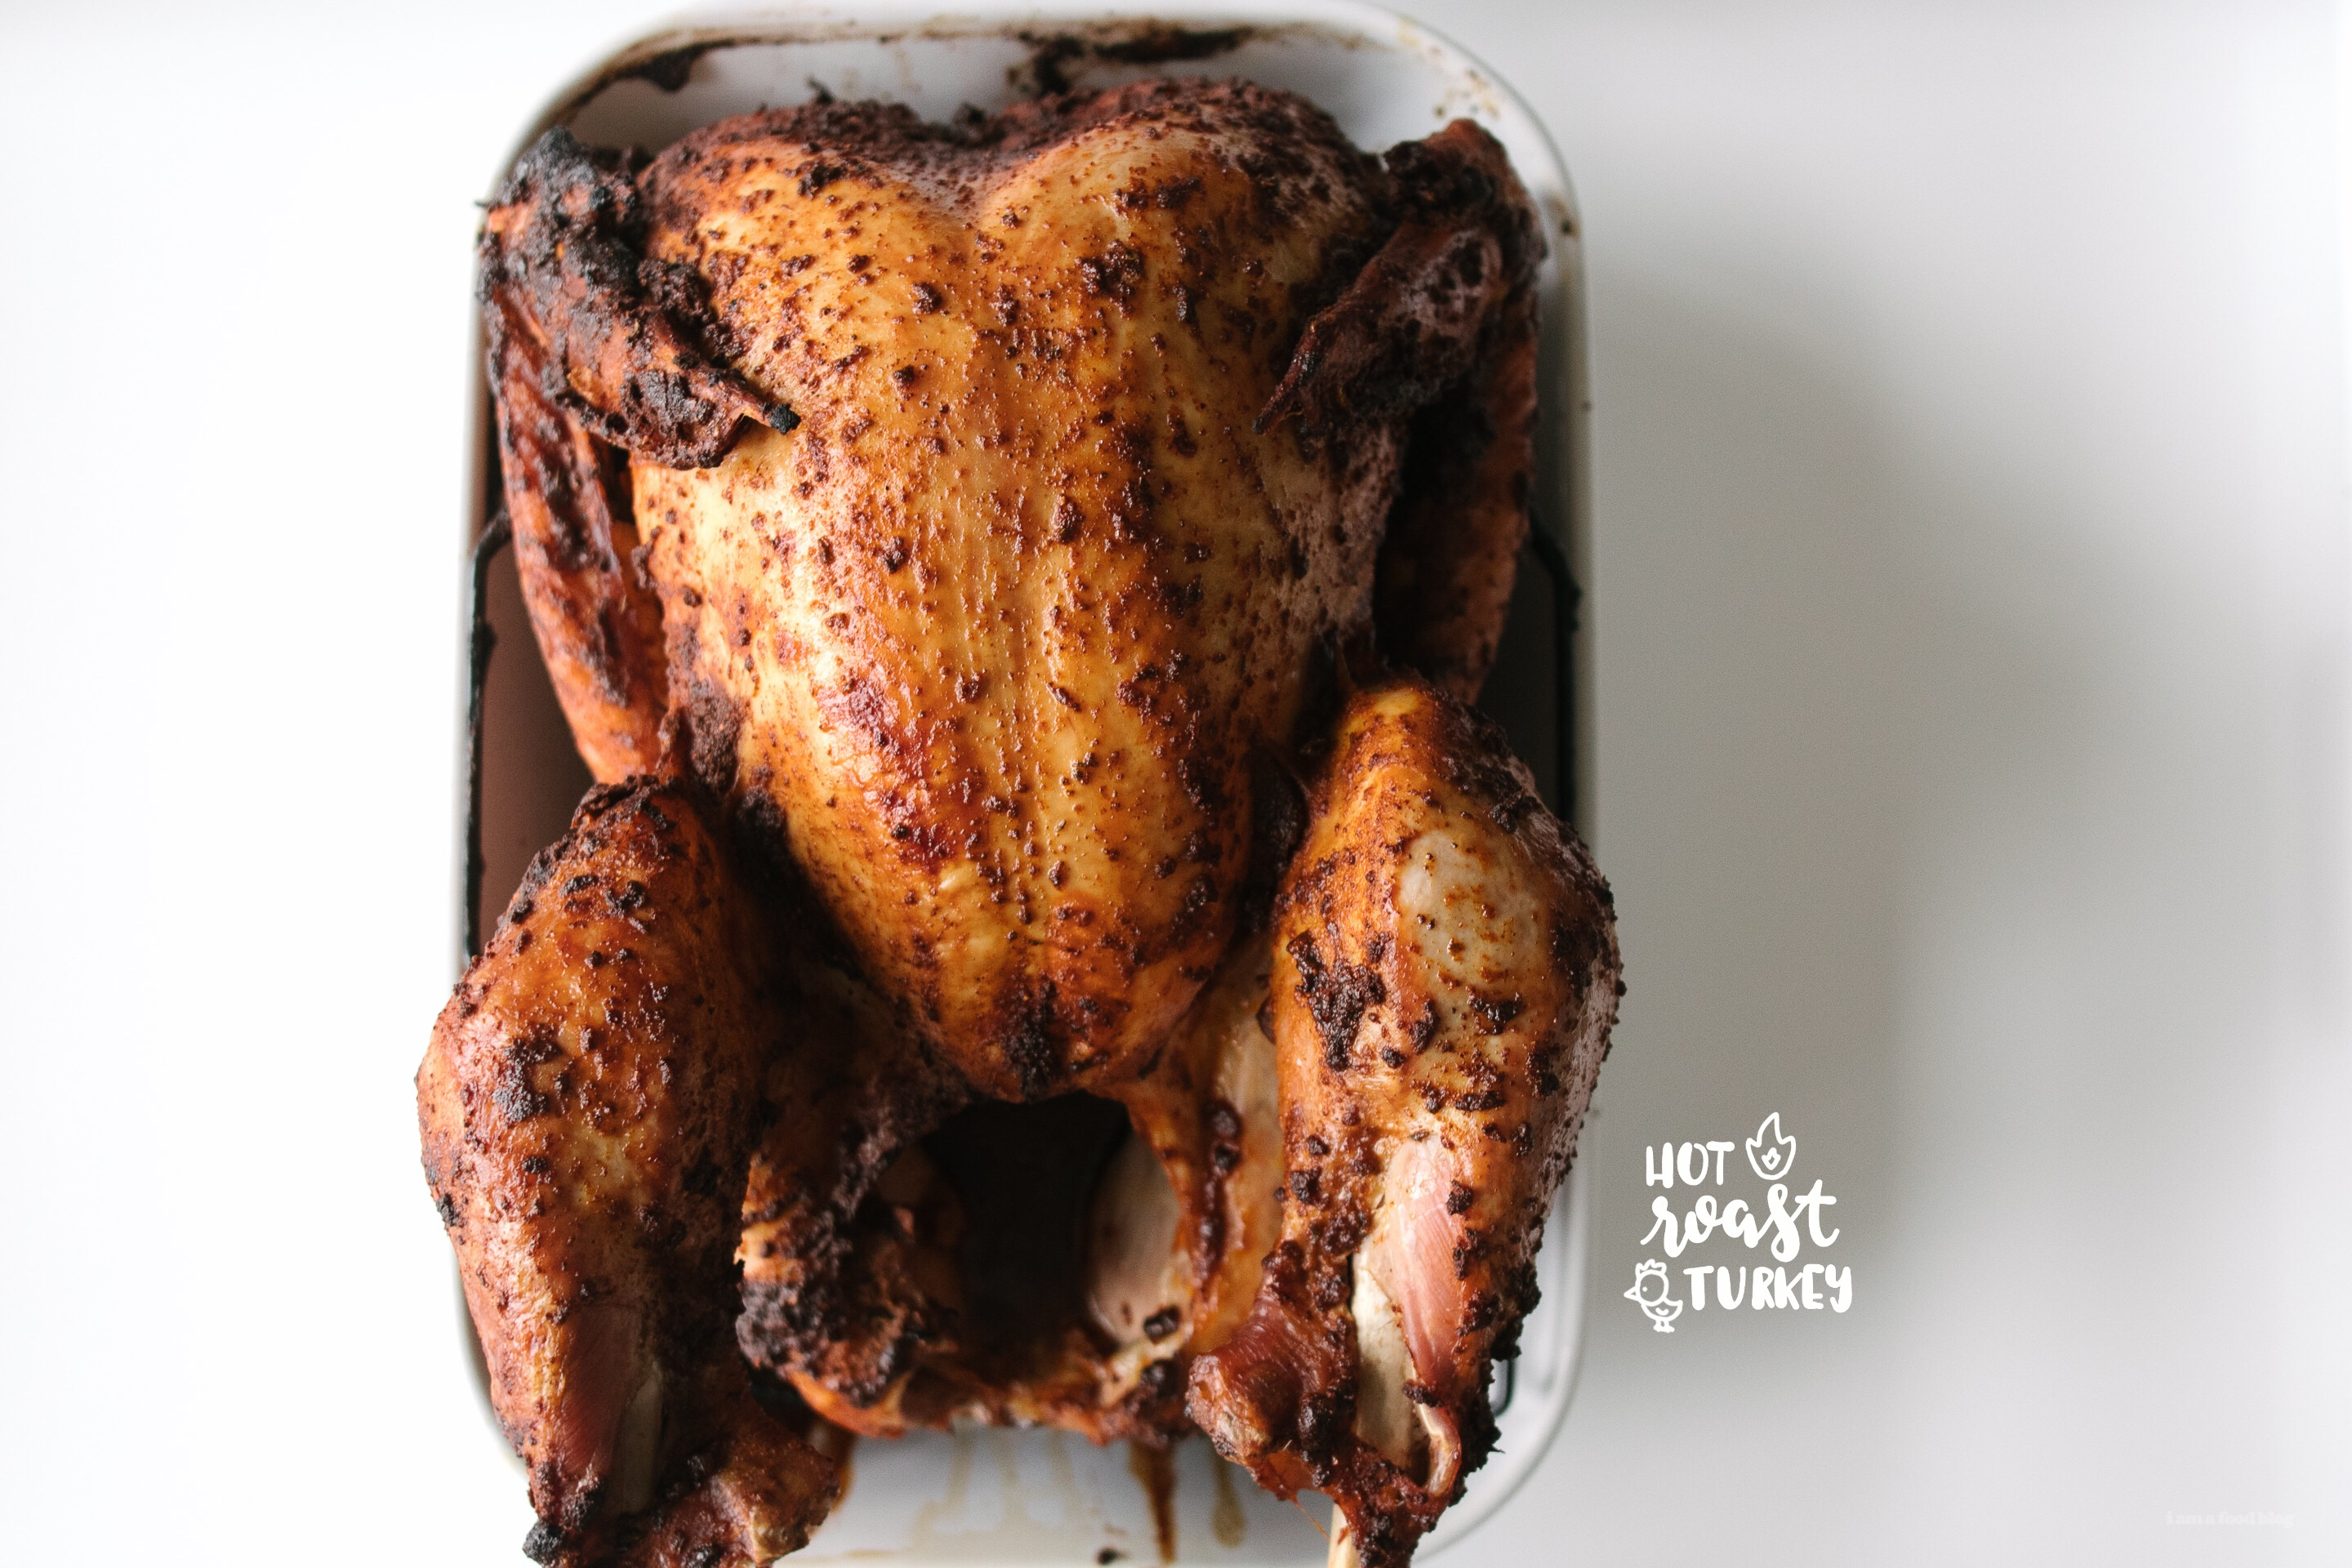 hot roasted turkey - www.iamafoodblog.com